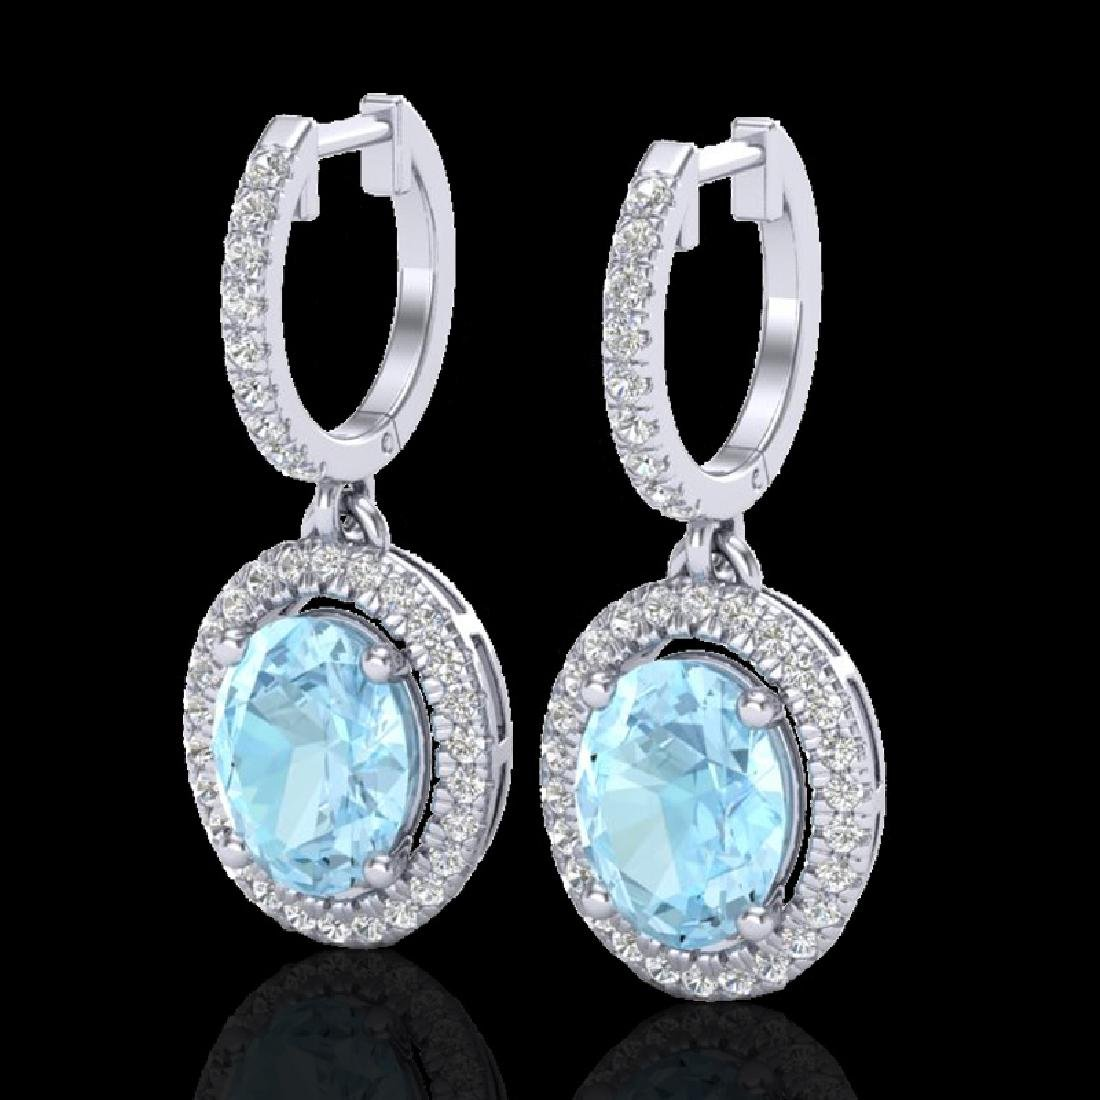 3.25 CTW Aquamarine & Micro Pave VS/SI Diamond Earrings